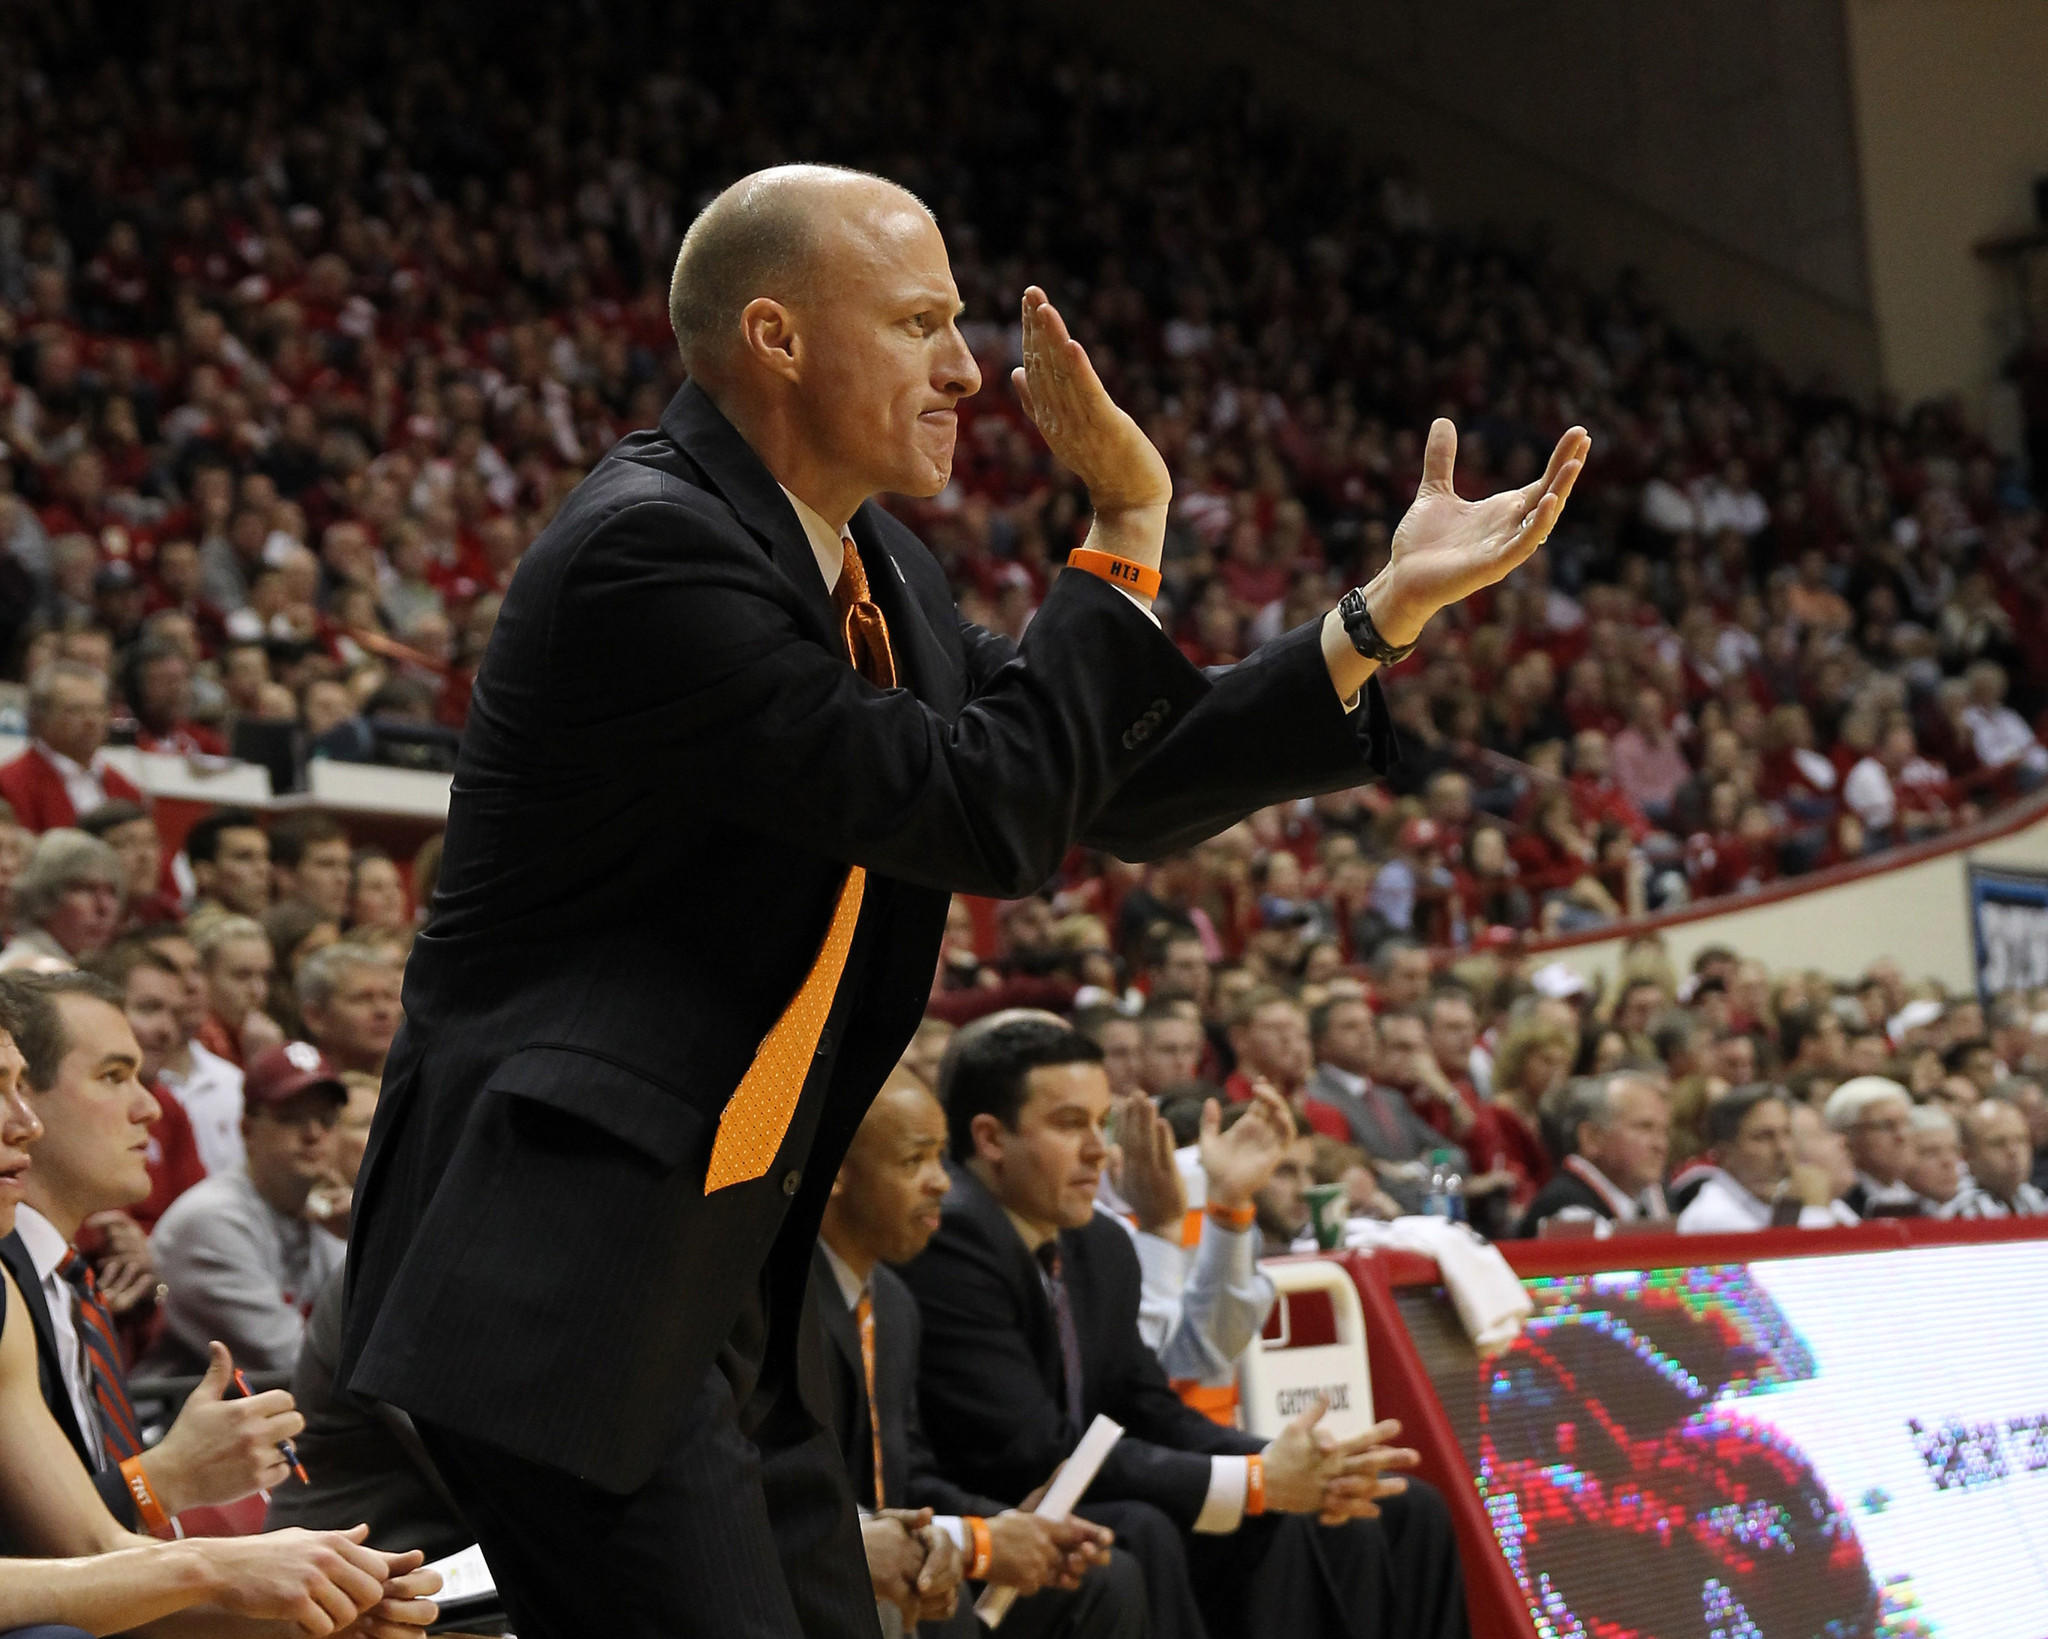 Illini coach John Groce reacts during the second half of the game against Indiana Hoosiers at Assembly Hall. Indiana won 56-46.